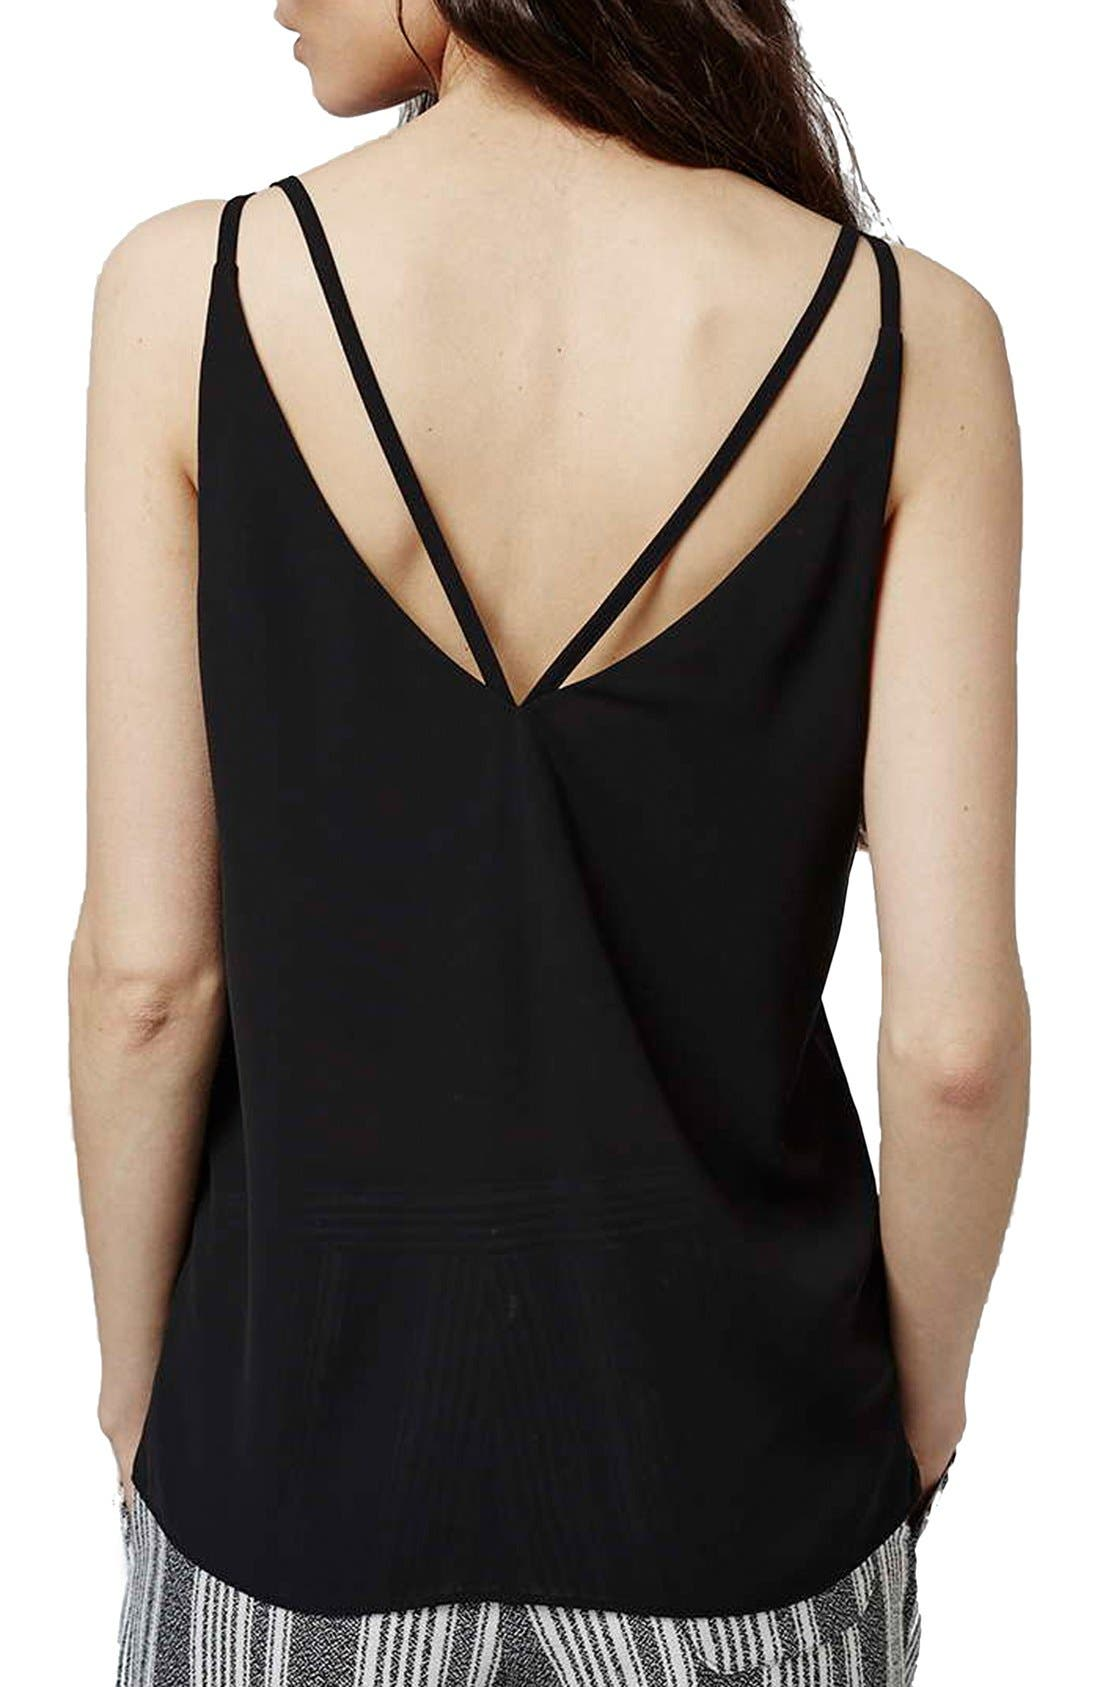 TOPSHOP,                             Double Strap V-Back Camisole,                             Alternate thumbnail 6, color,                             001